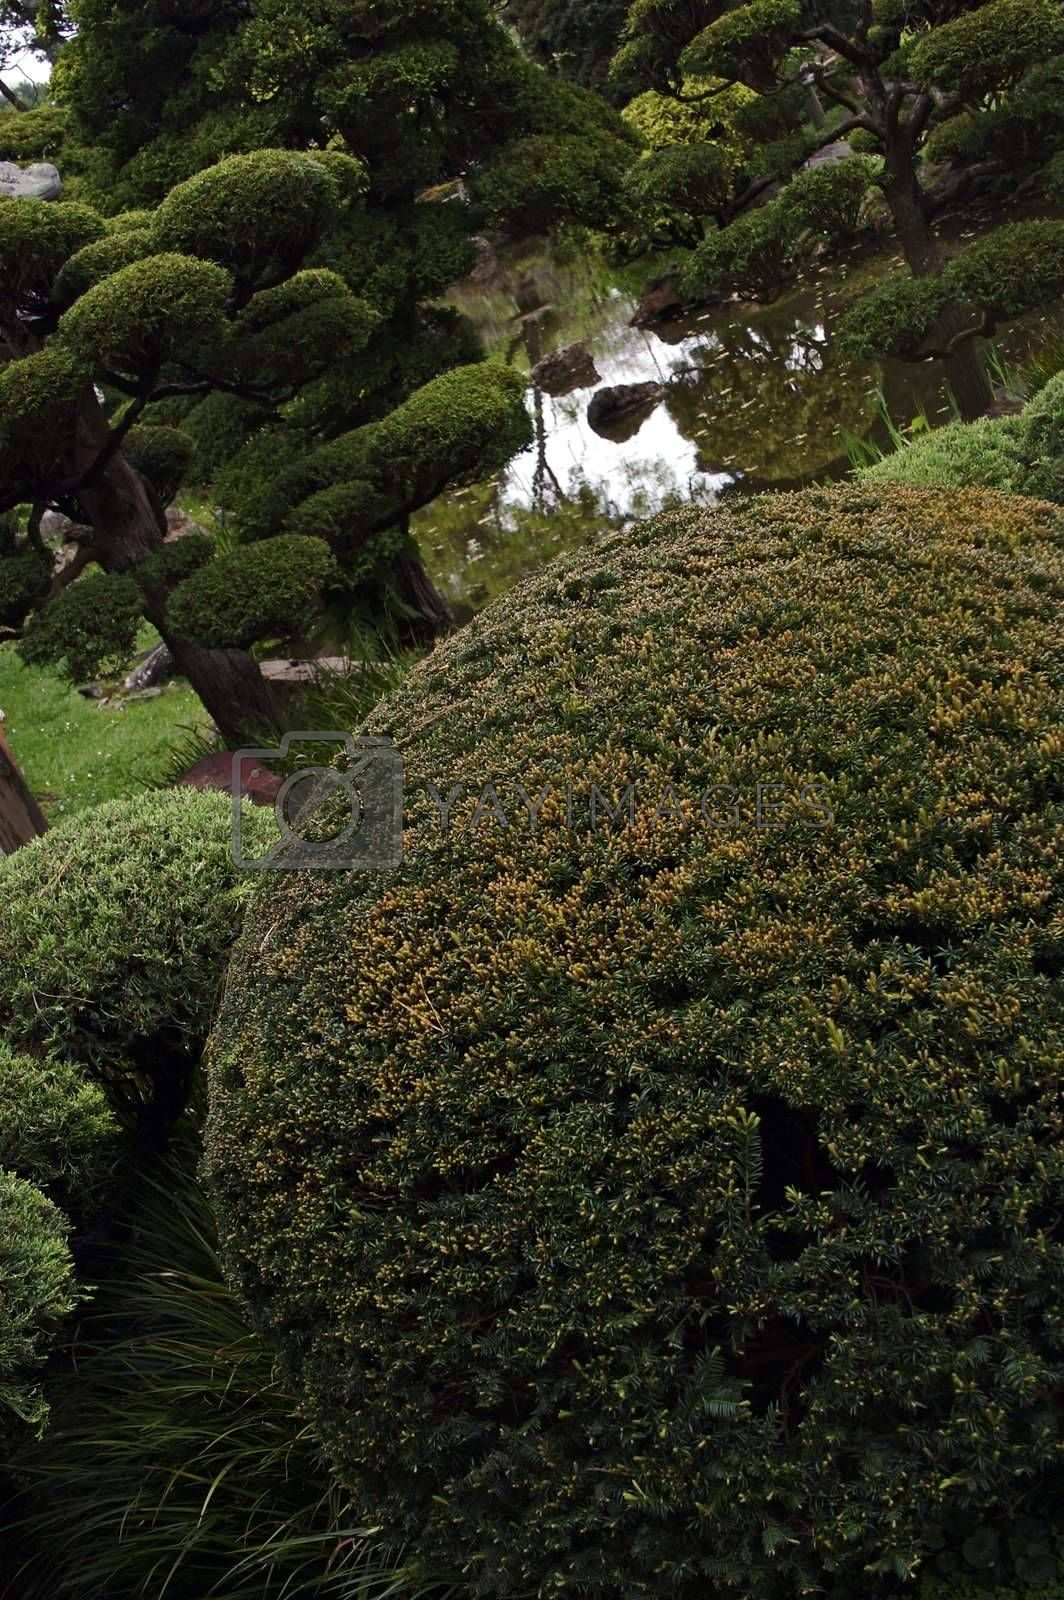 Royalty free image of Round trees in a japanese garden by janza